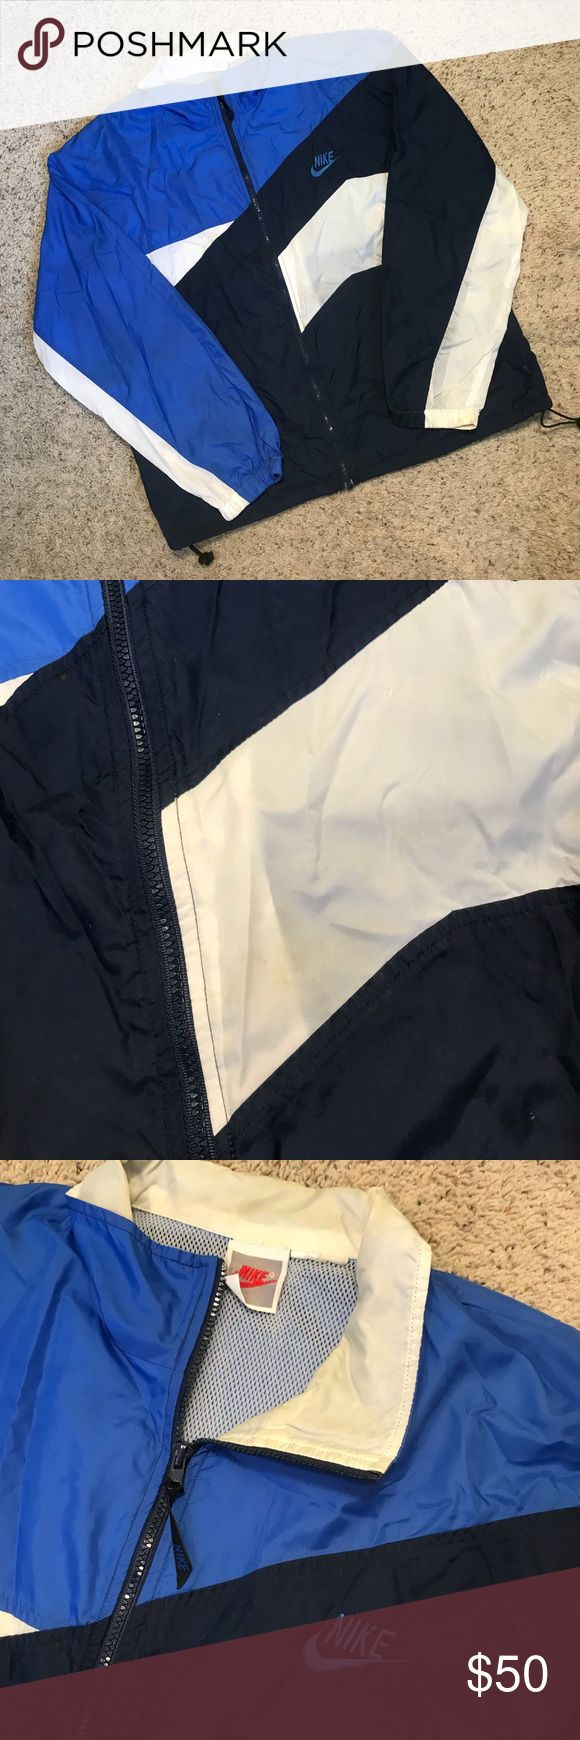 Vintage Nike Windbreaker Pryme® | Vintage Nike Windbreaker | Good Condition Some Yellowing On Neck And White From Age (See Pictures) | Size Large |🔥 $50 + Shipping 🔥 Nike Jackets & Coats Windbreakers